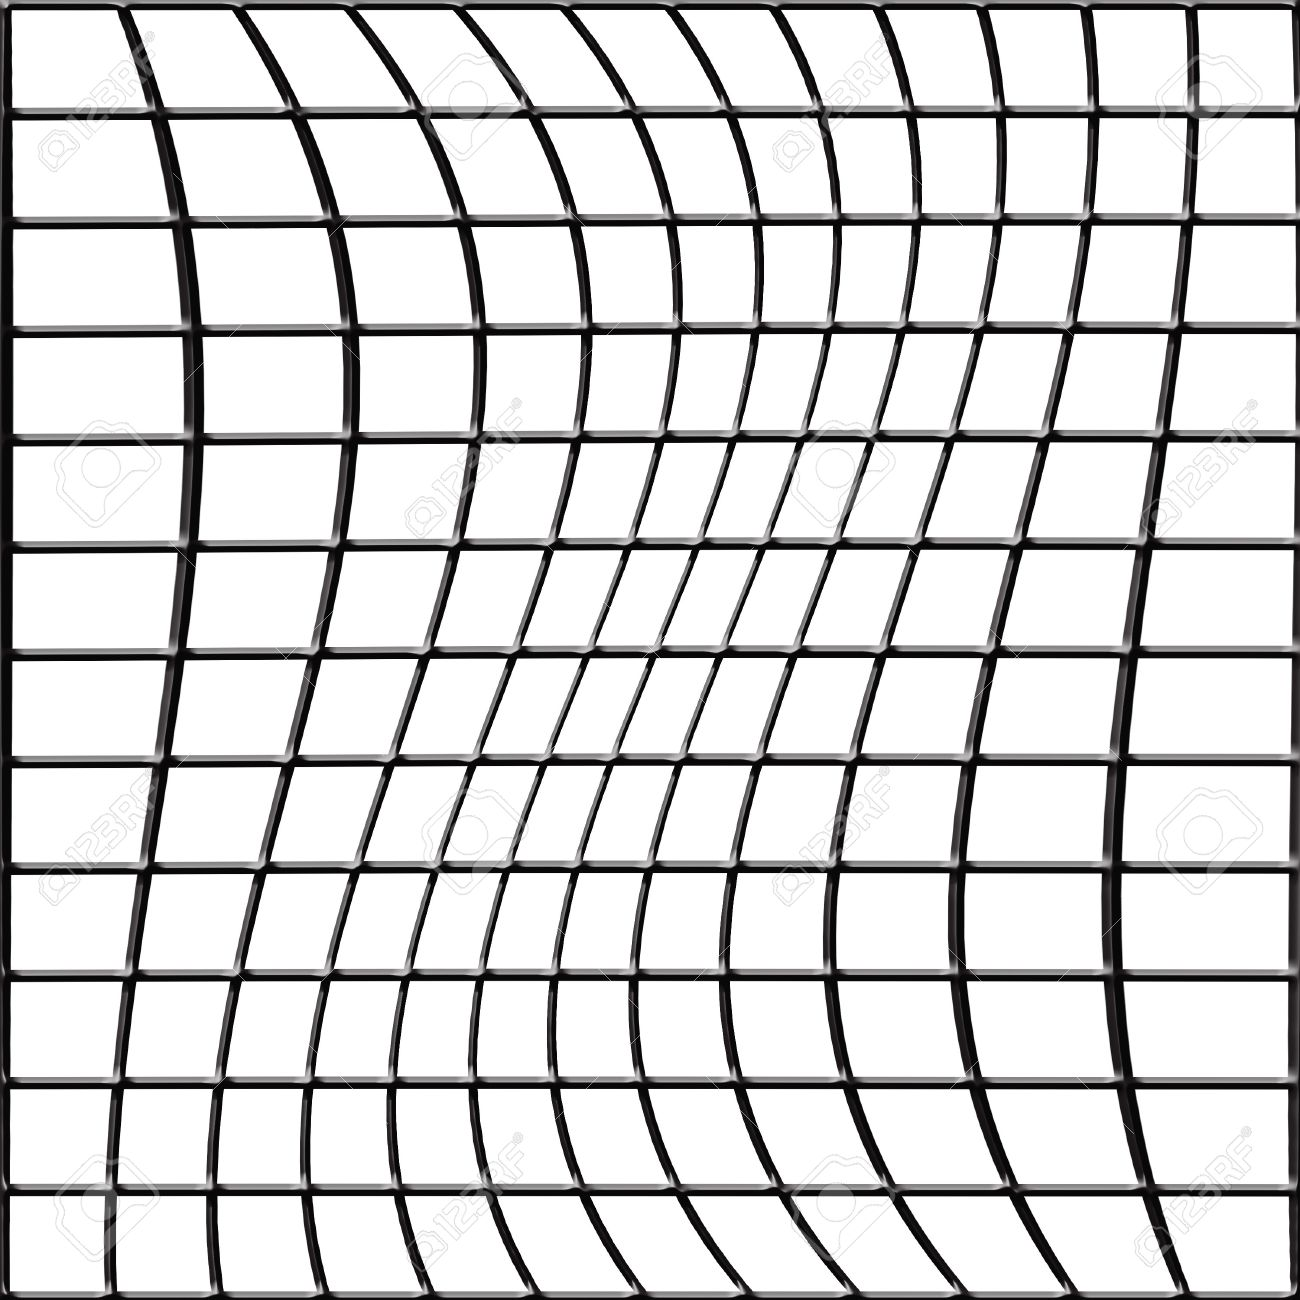 1300x1300 Distorted 3d Bent Fence Grid On A White Background Stock Photo